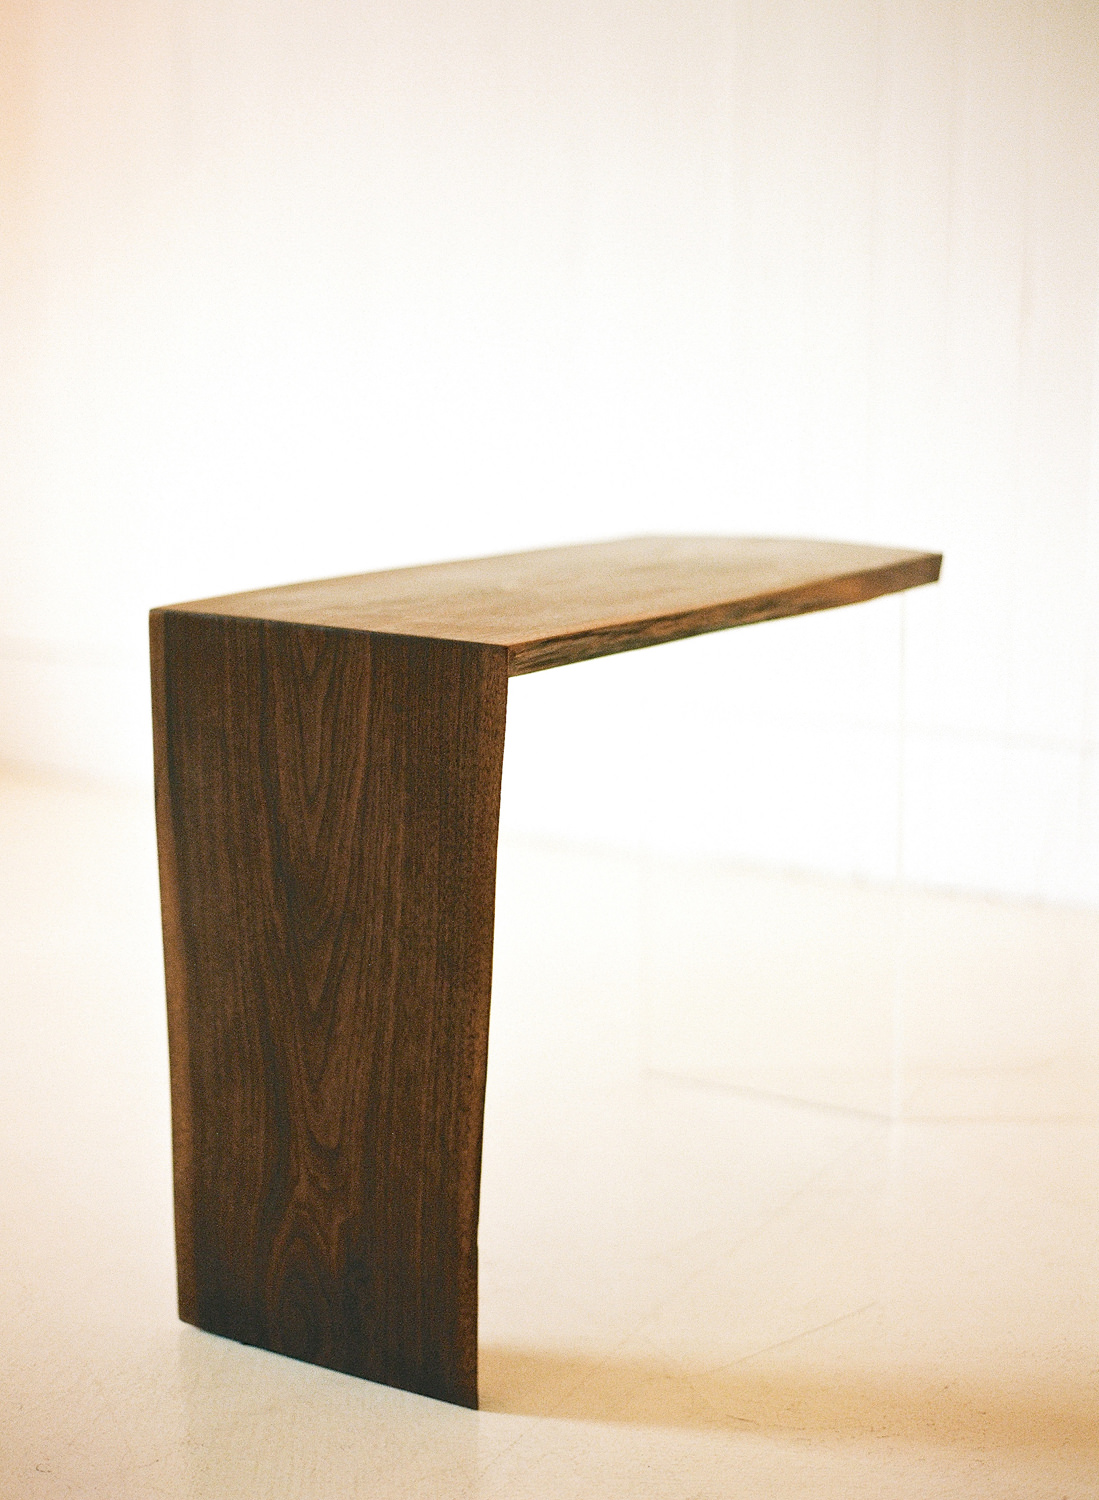 Walnut and Acrylic Console Table